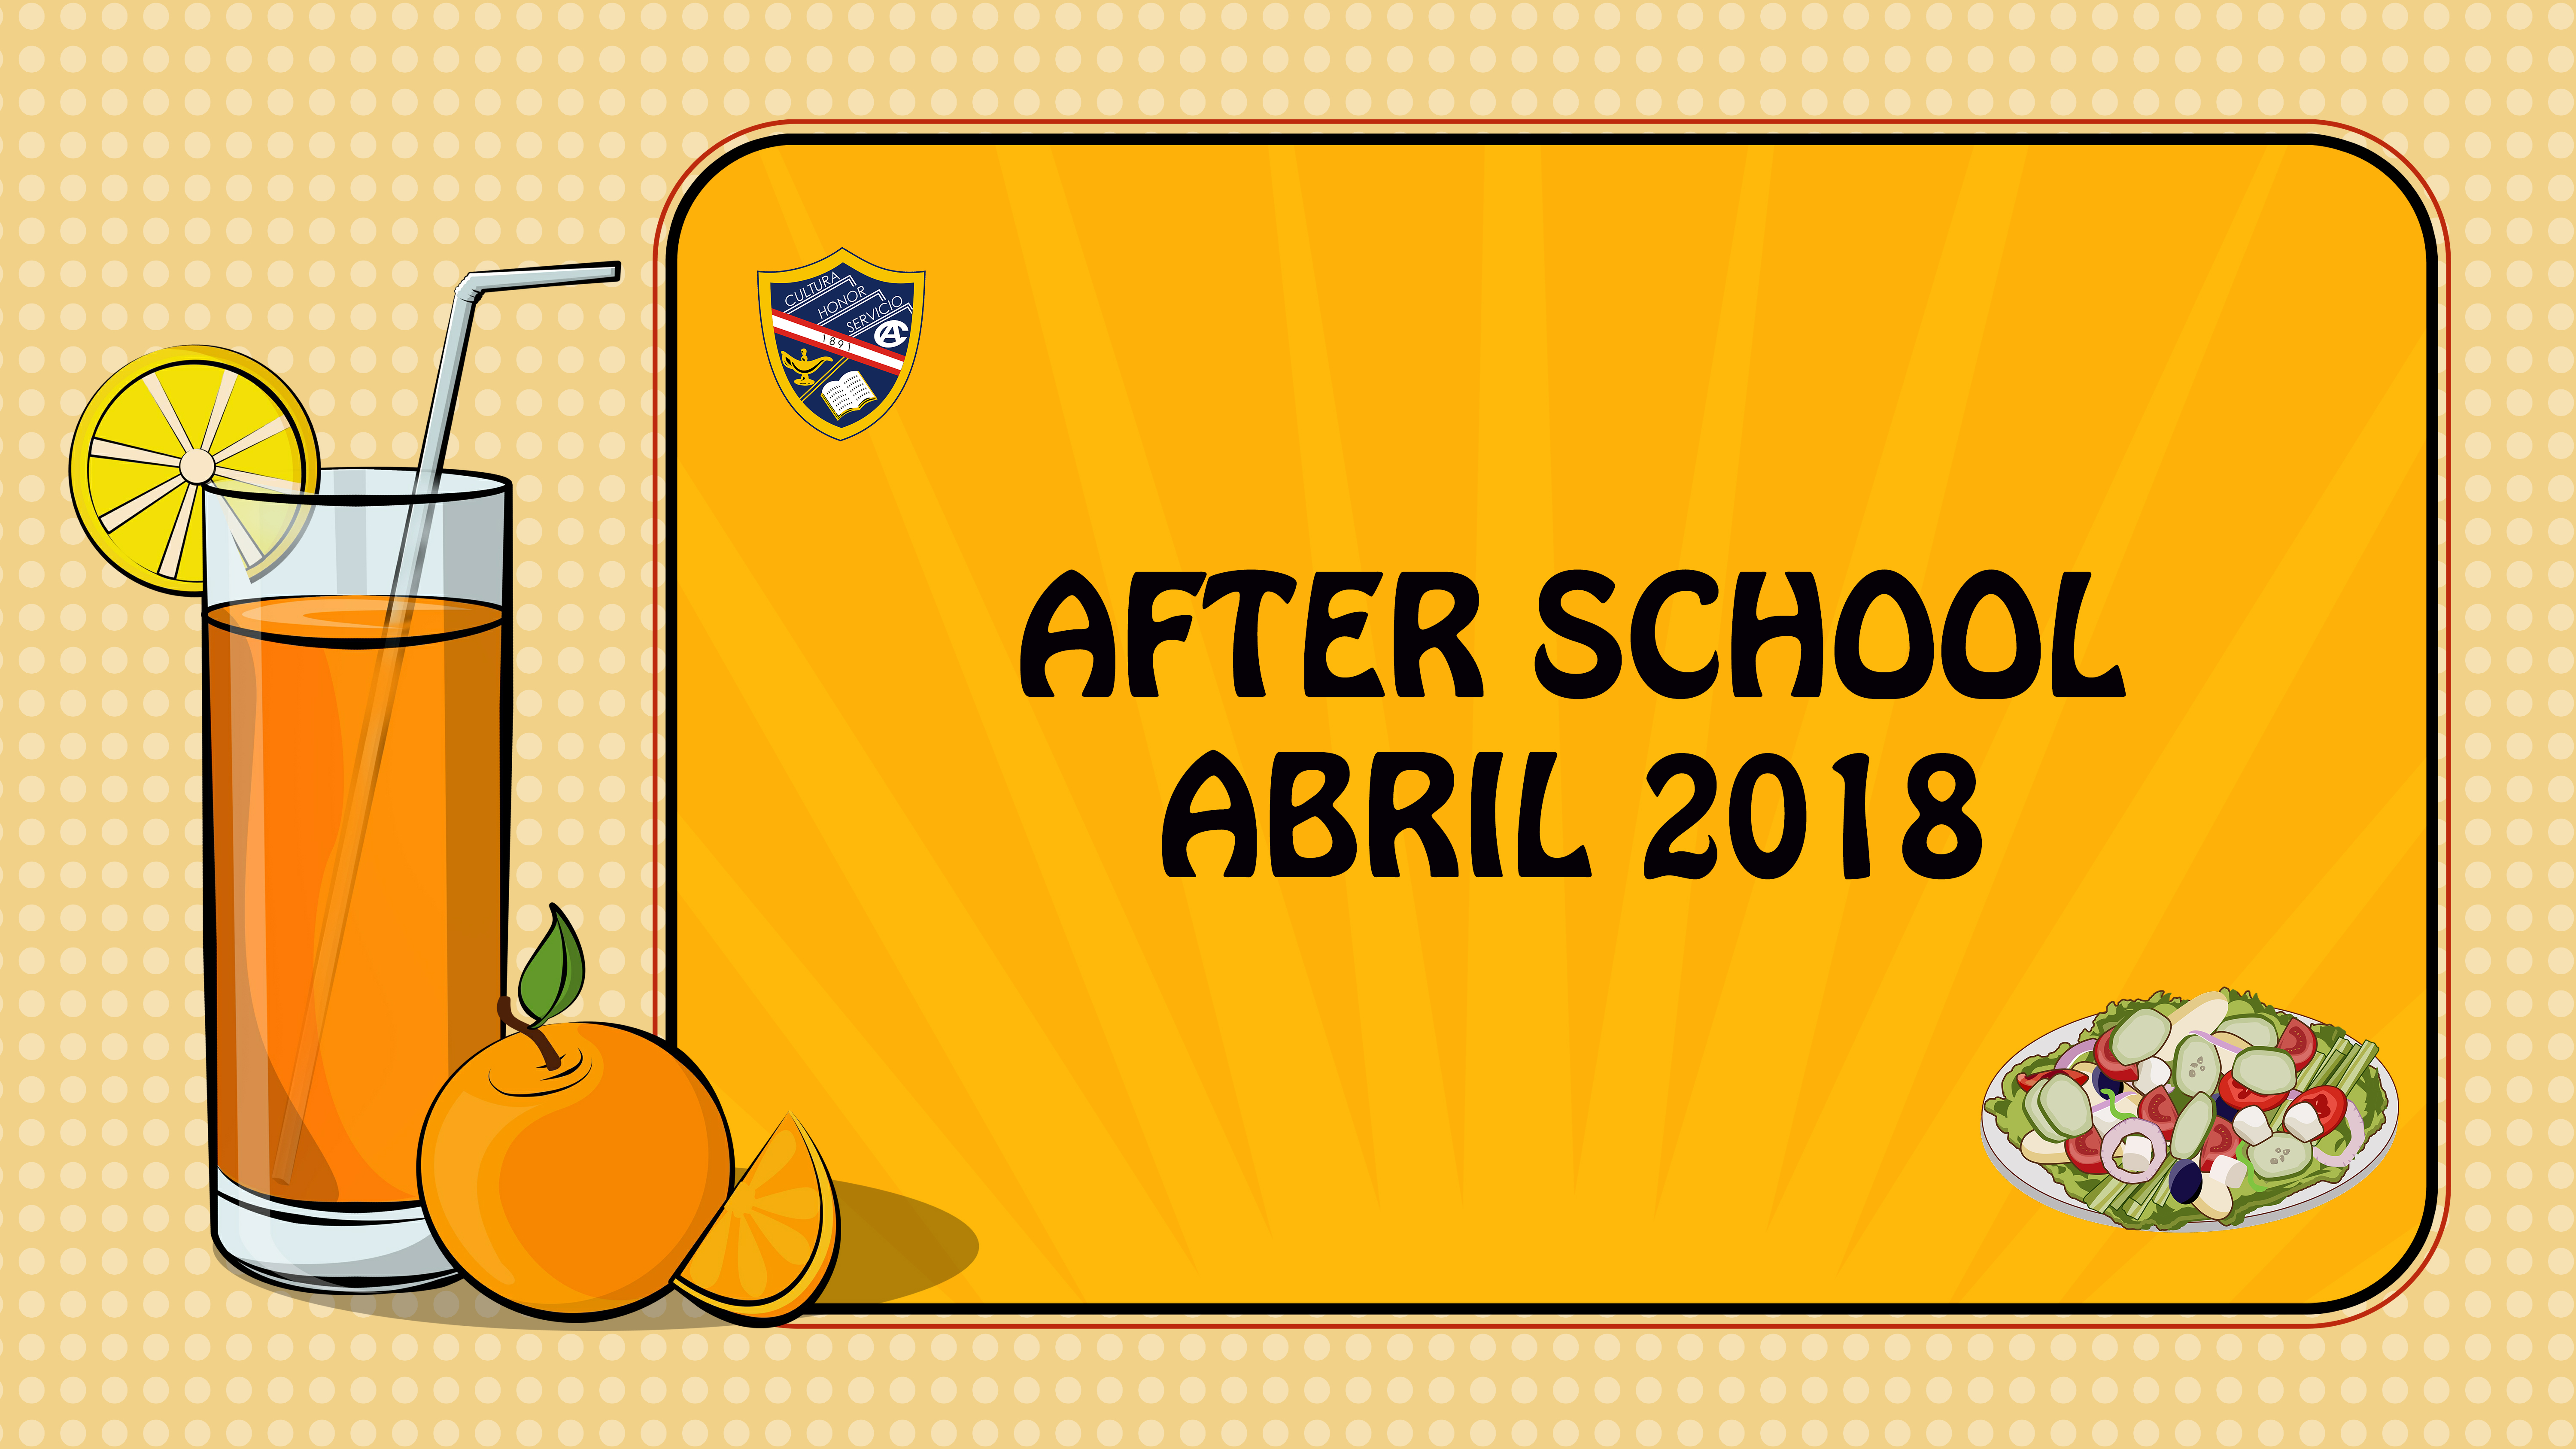 AFTER SCHOOL- ABRIL 2018